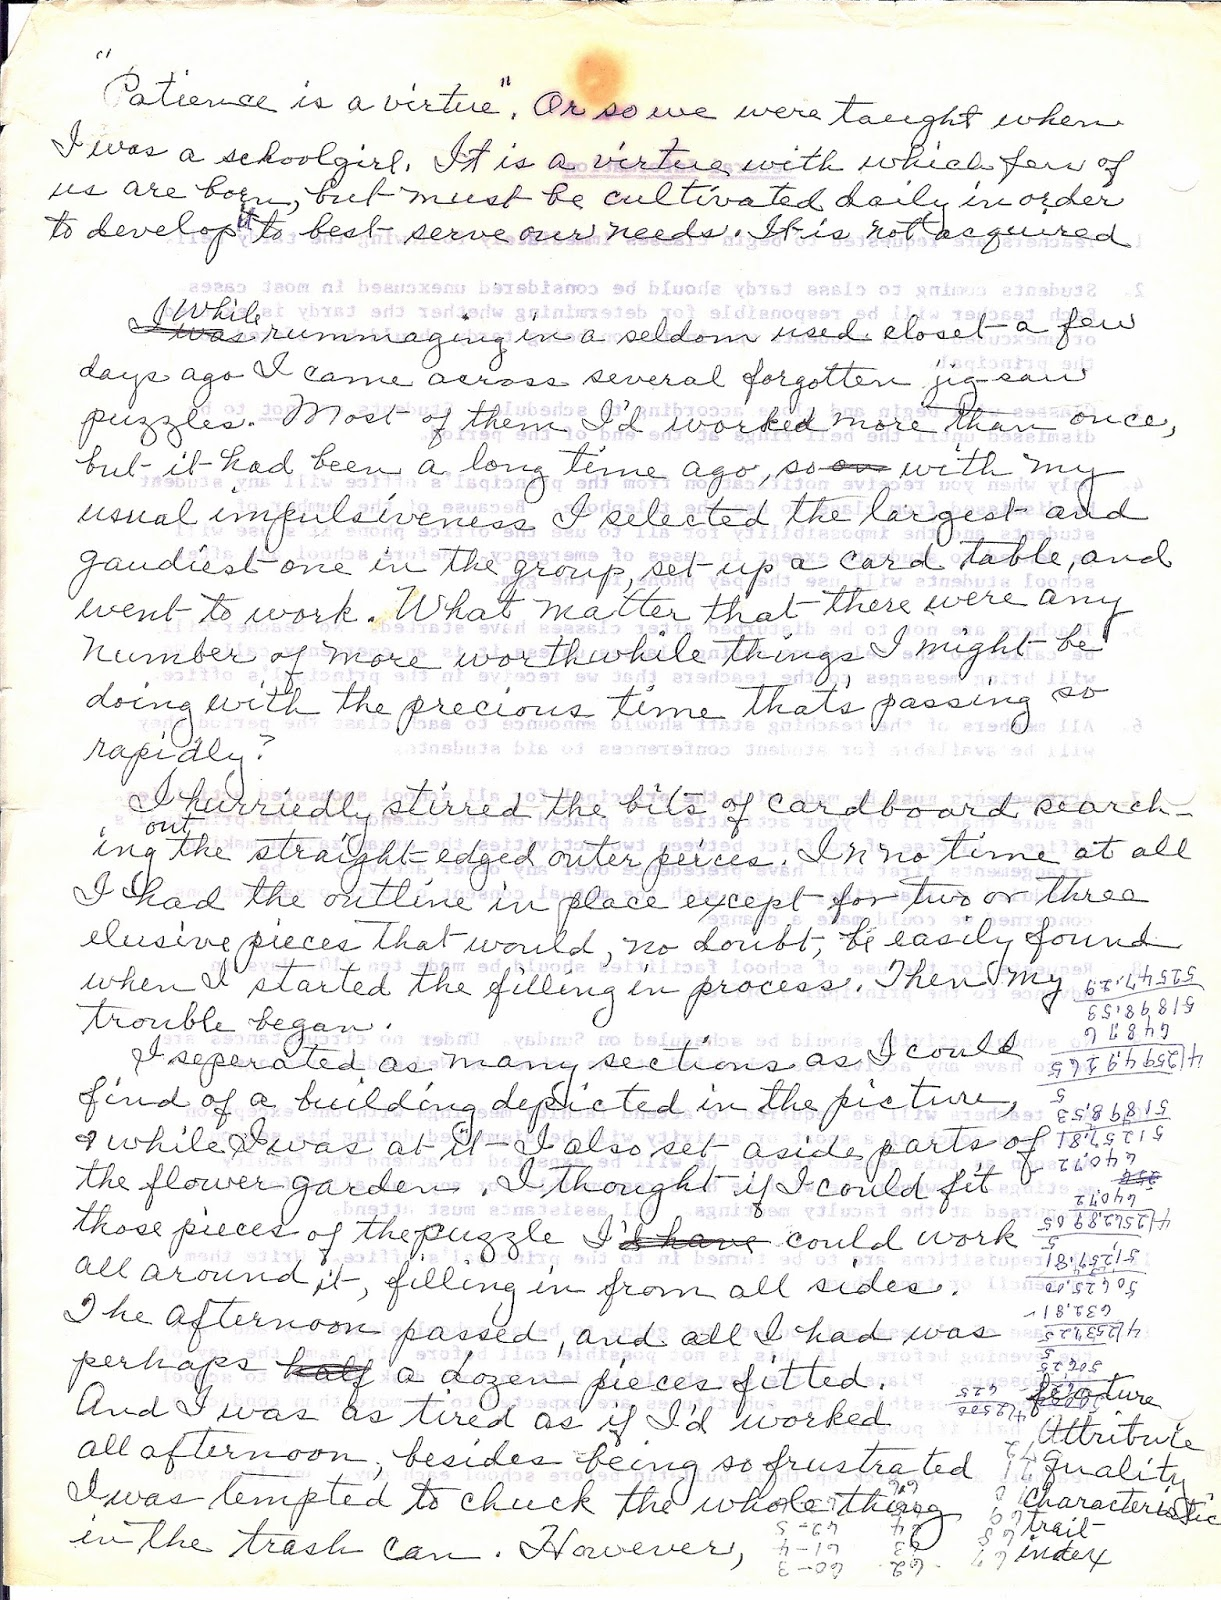 audrey s ambition she loved to write and she wrote on anything and everything i thought you might enjoy seeing the pages on which she inscribed the above essay